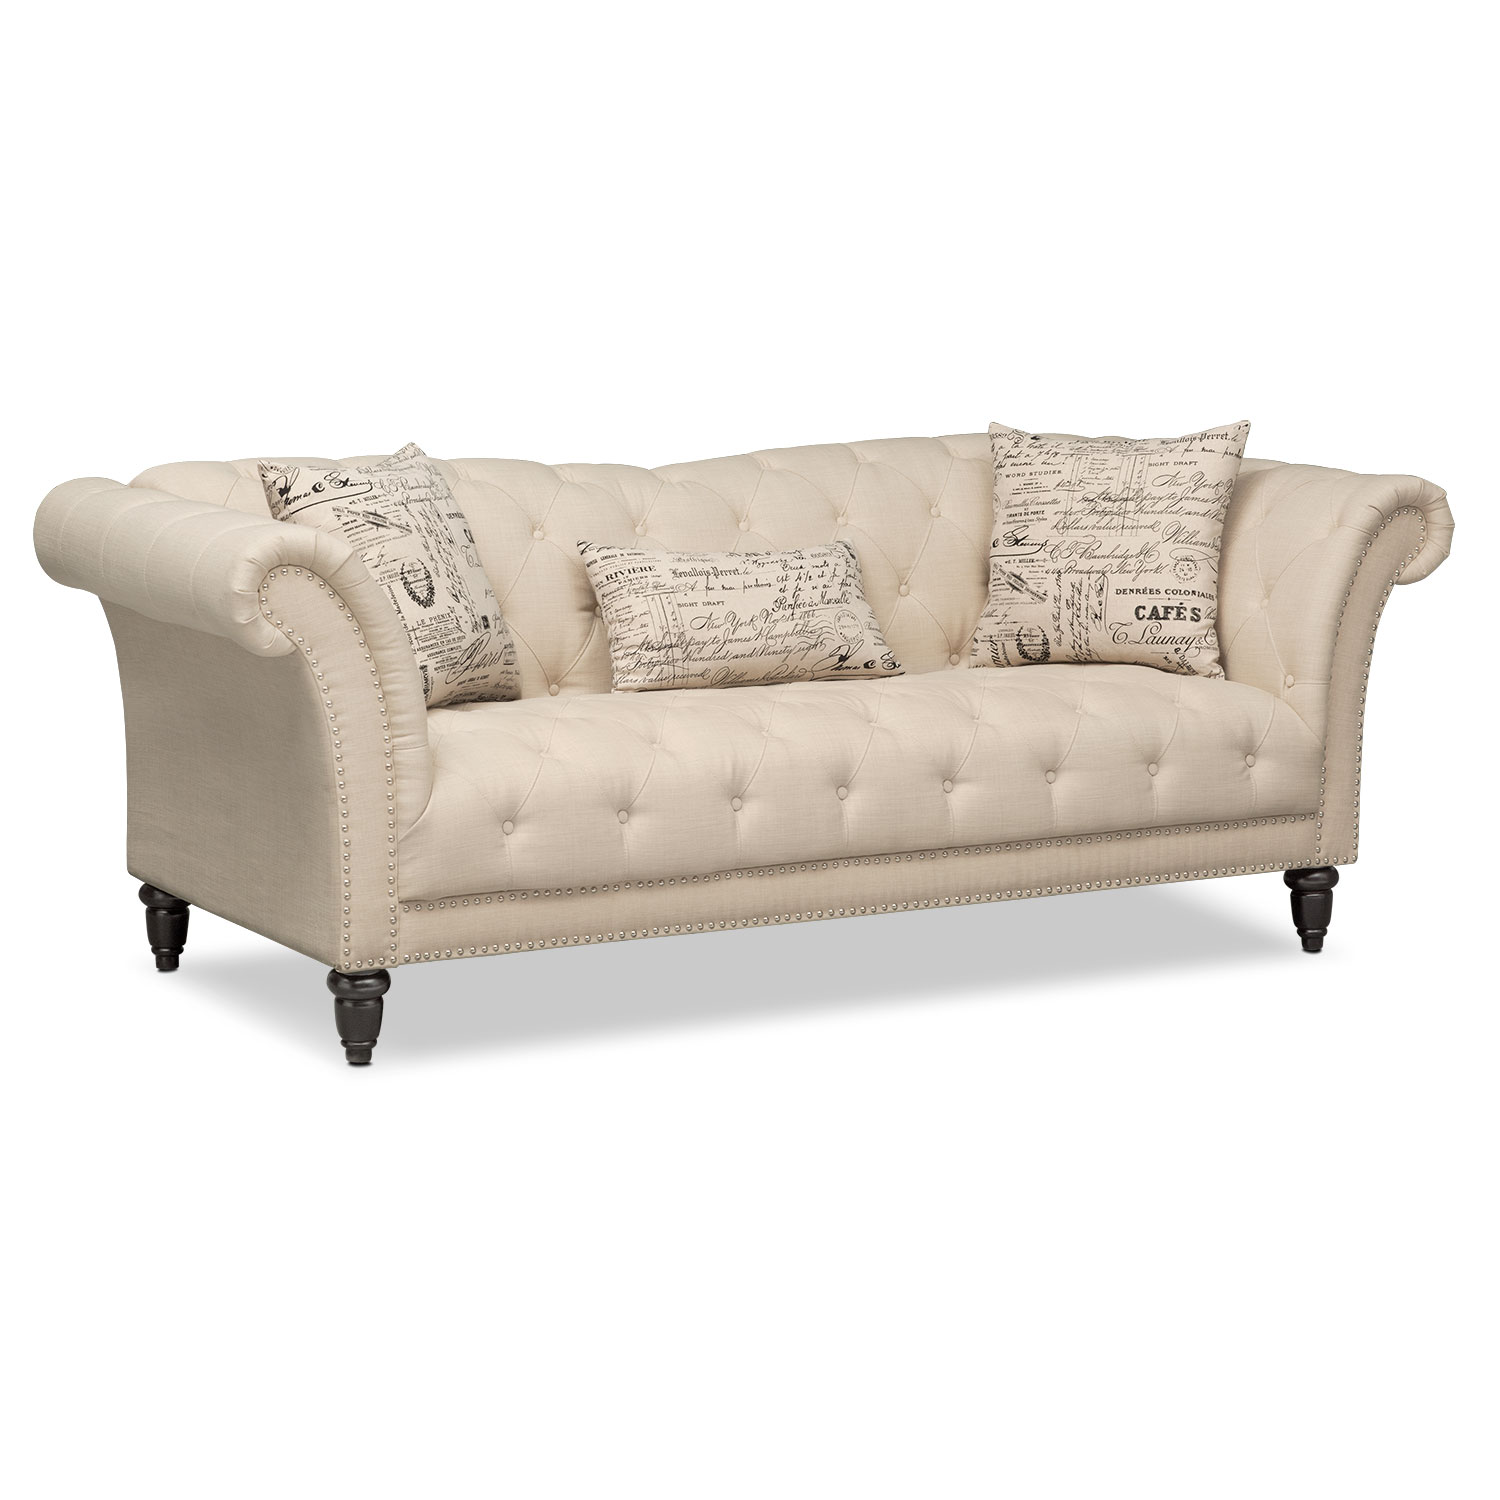 Marisol Sofa Beige American Signature Furniture : 456434 from www.americansignaturefurniture.com size 1500 x 1500 jpeg 154kB